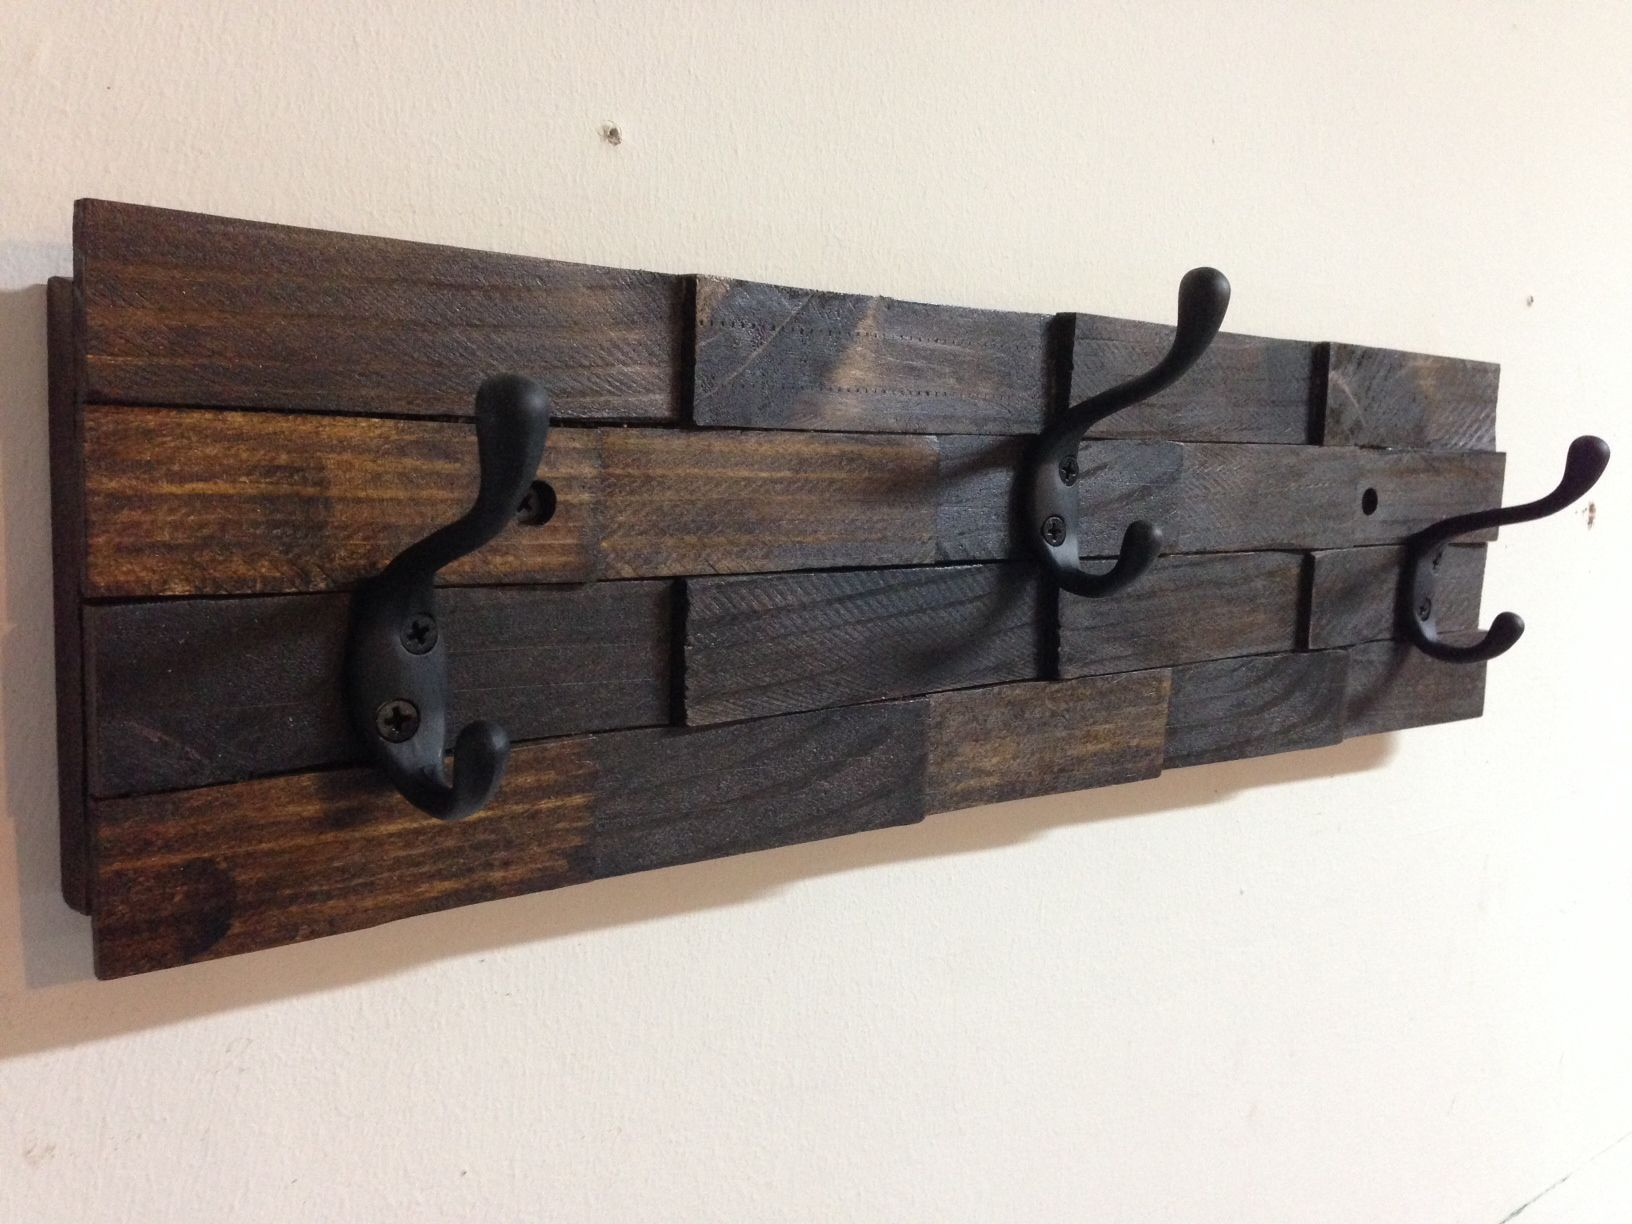 19 Ineffable Wood Working Awesome Ideas Wall Mounted Coat Rack